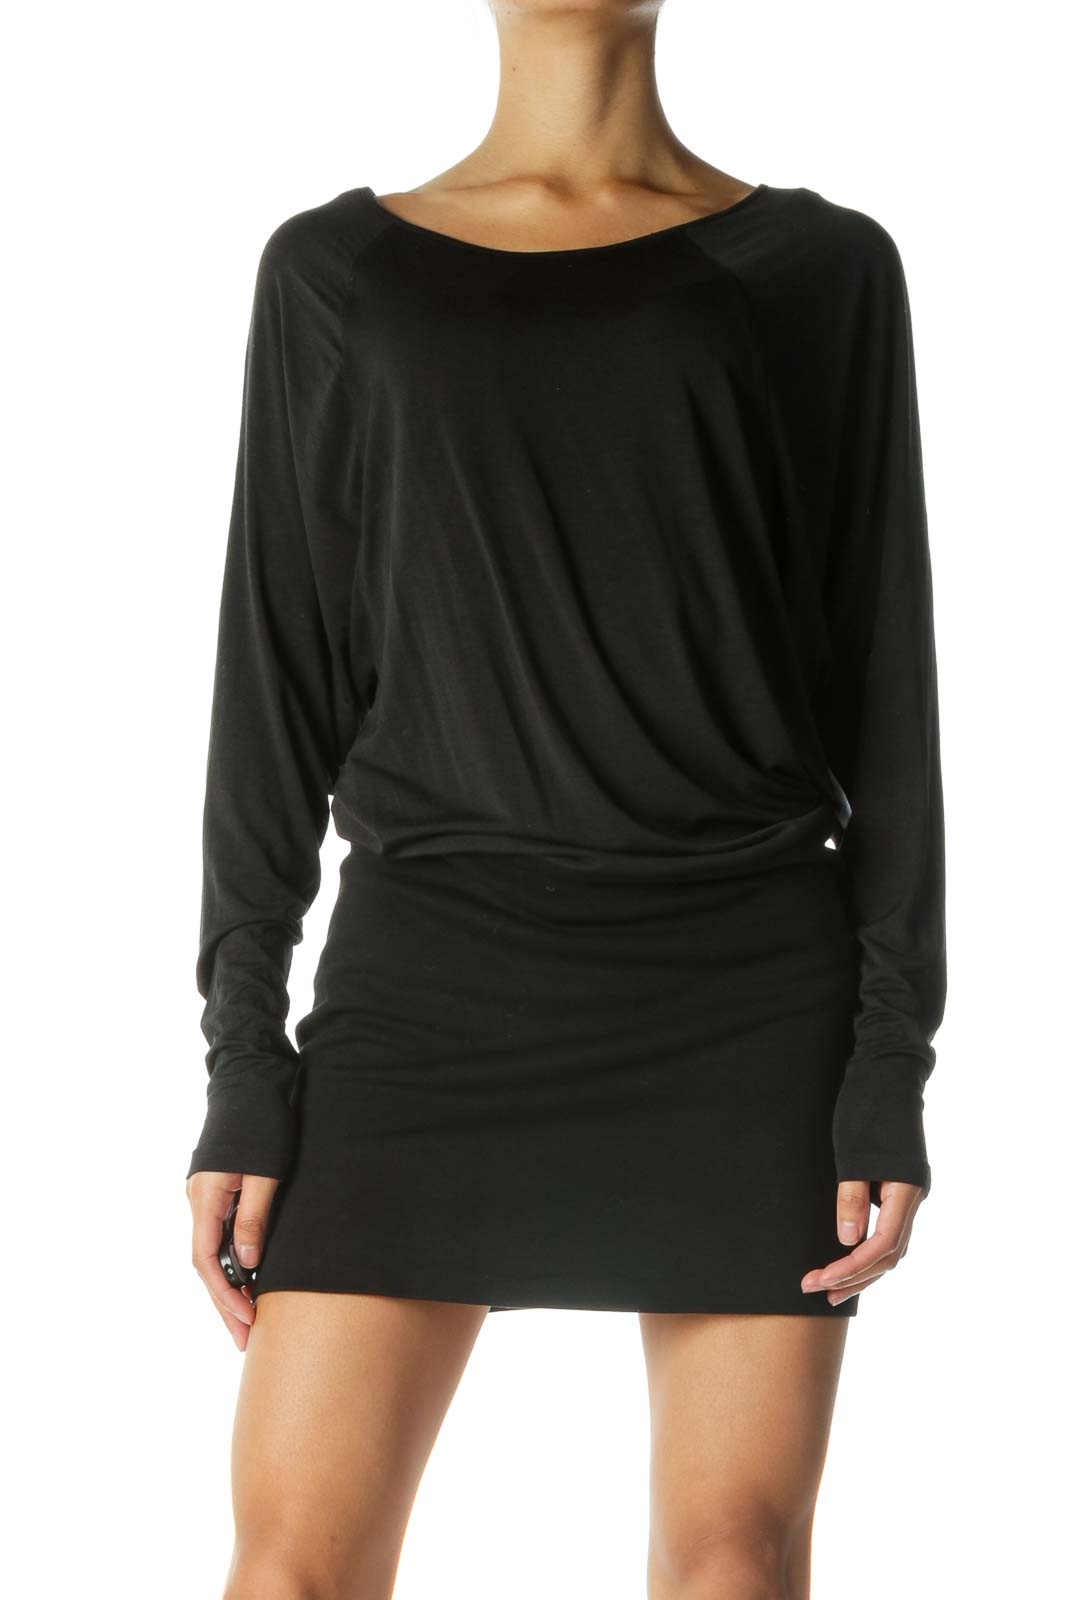 Black Bodycon Long Sleeve Dress